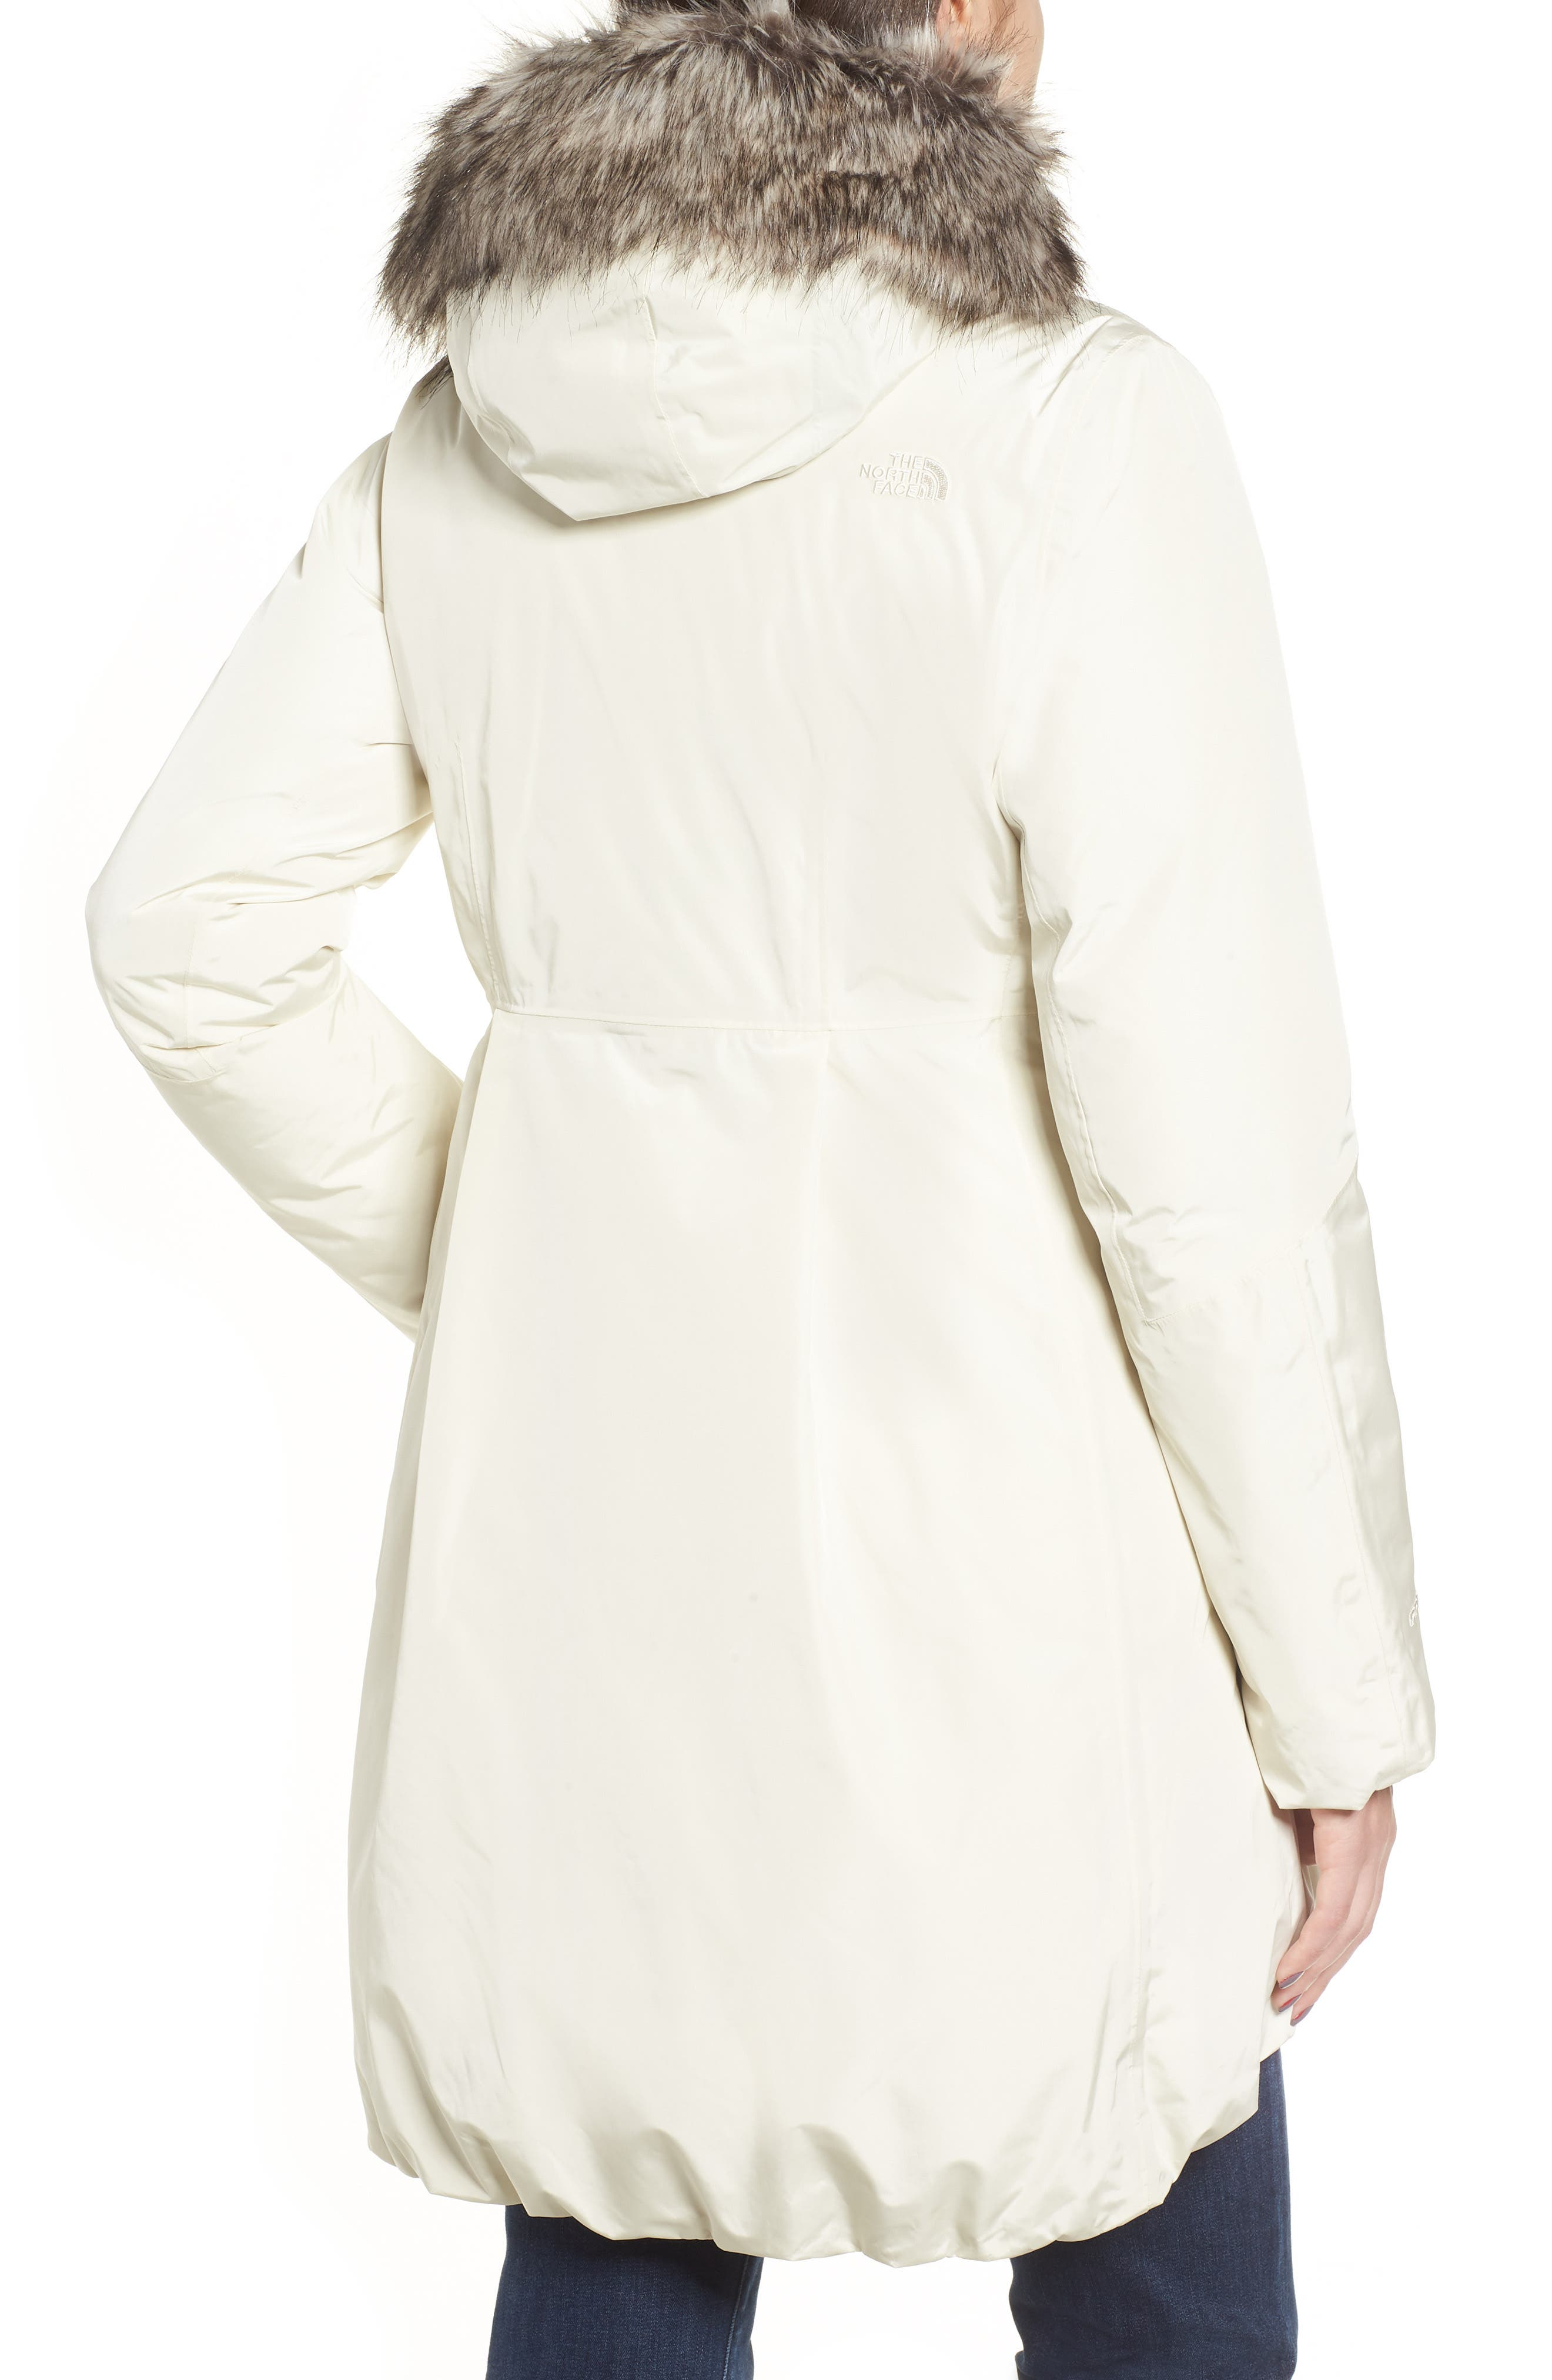 THE NORTH FACE,                             Transarctic Mama Down Parka,                             Alternate thumbnail 2, color,                             VINTAGE WHITE